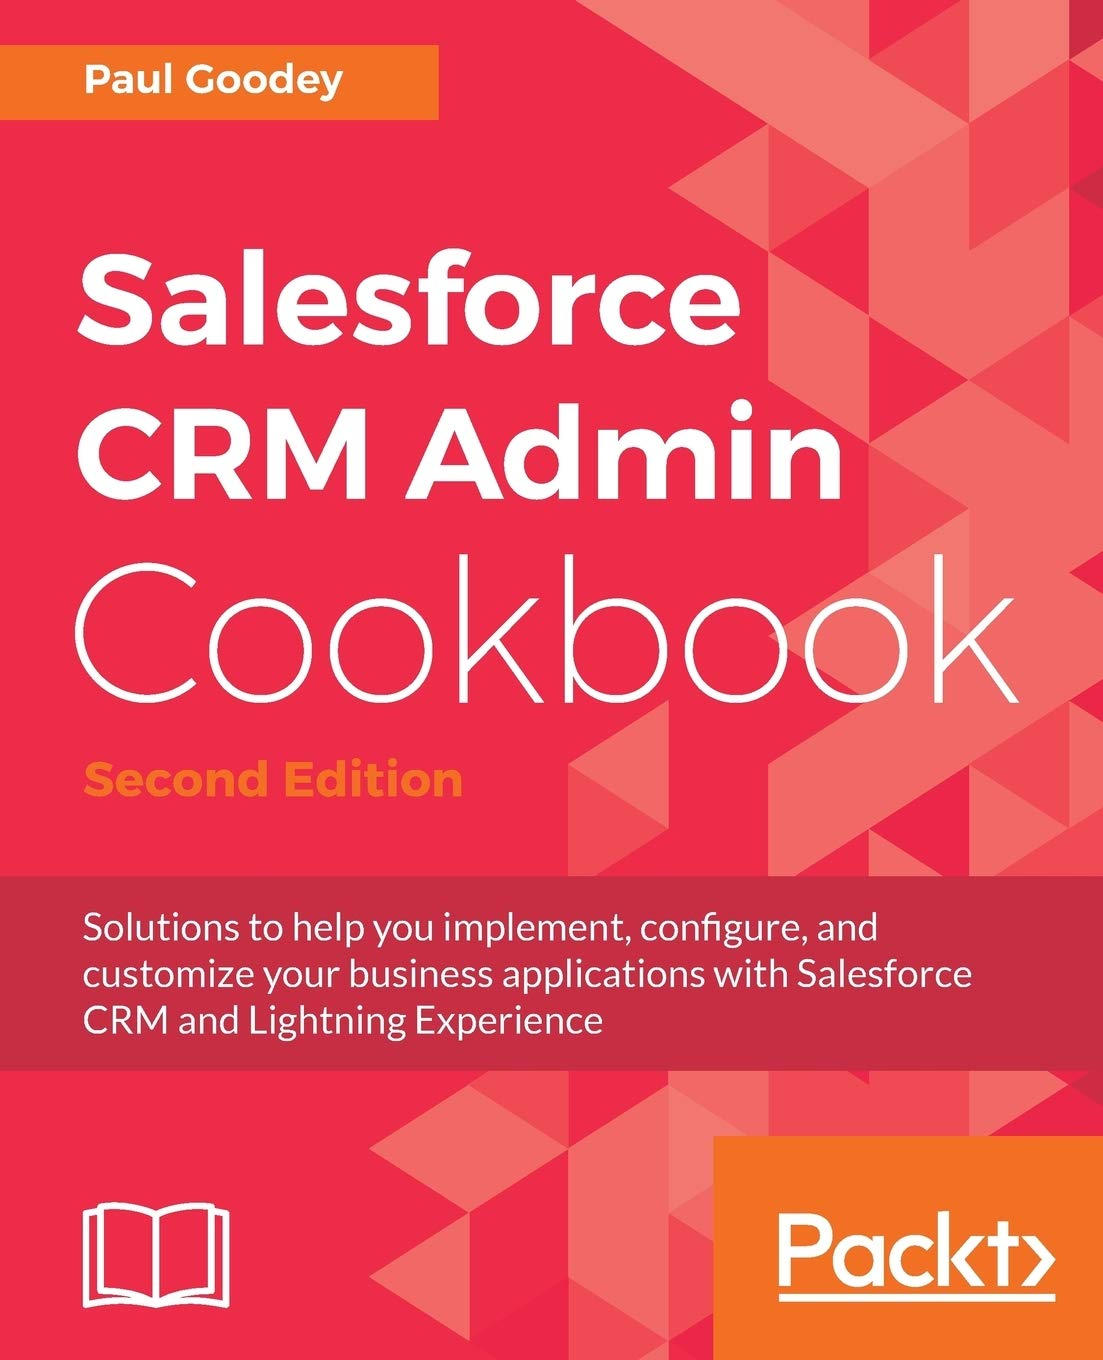 Salesforce Crm Admin Cookbook, Second Edition: Solutions to help you implement, configure, and customize your business applications with Salesforce CRM and Lightning Experience